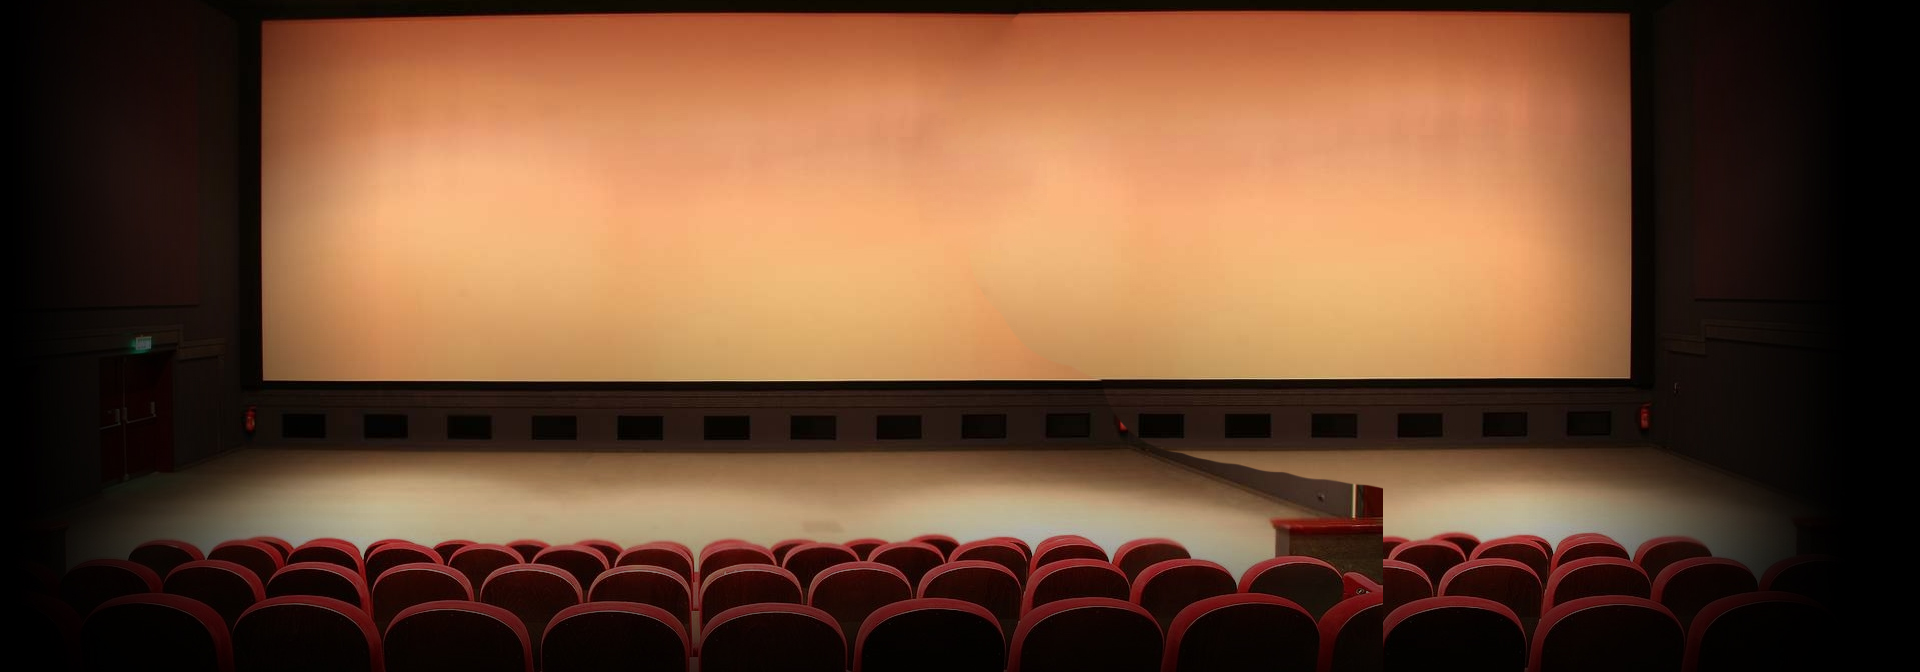 cinema background  screen  auditorium  film background